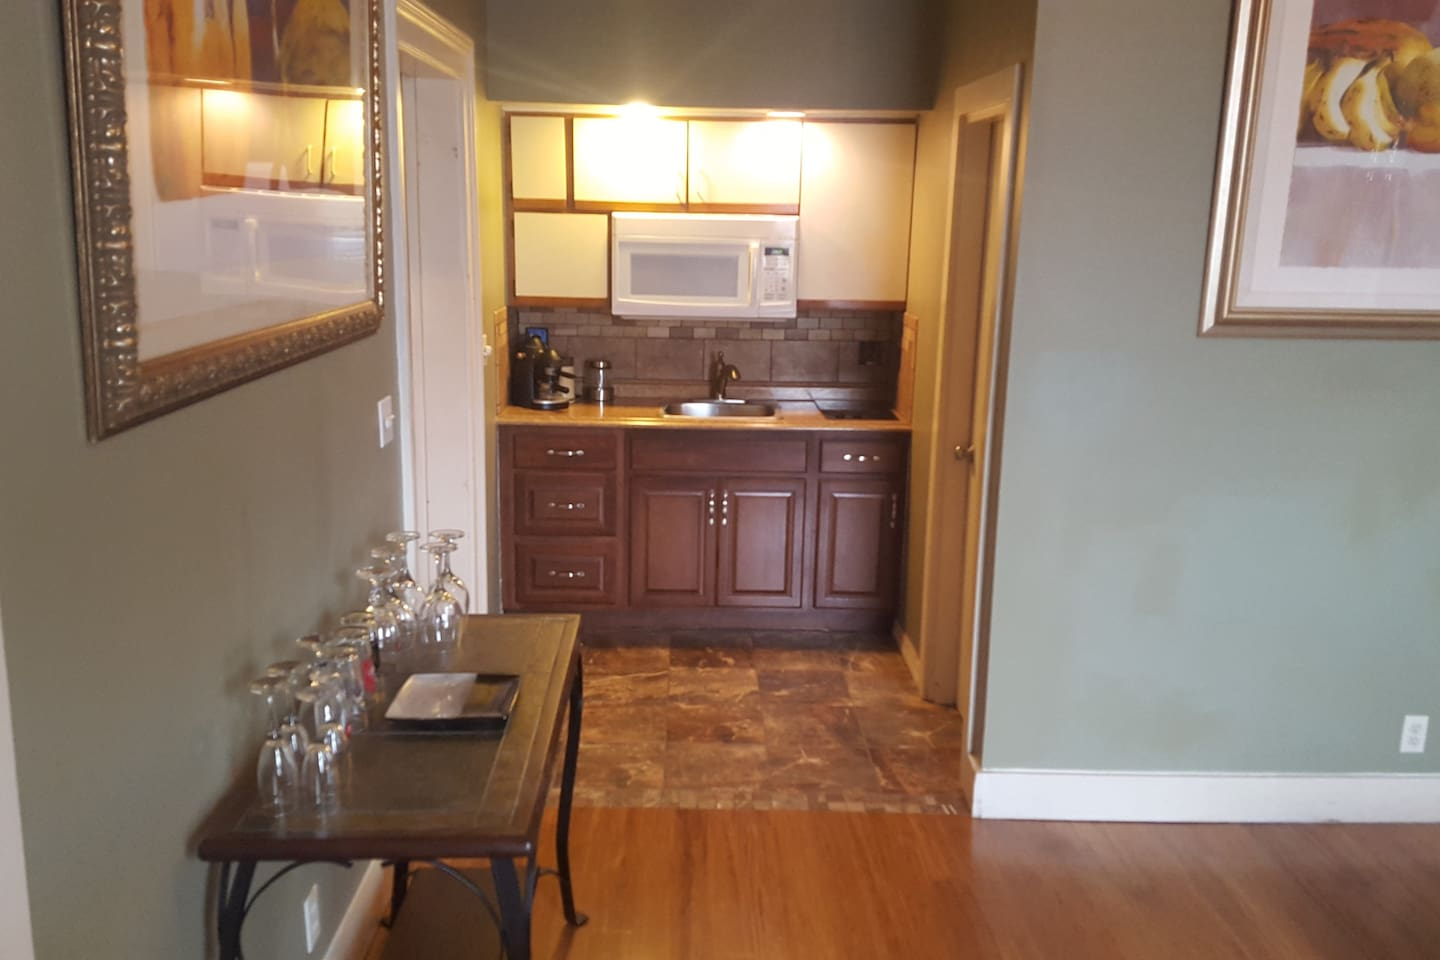 Kitchen from Living Room area.